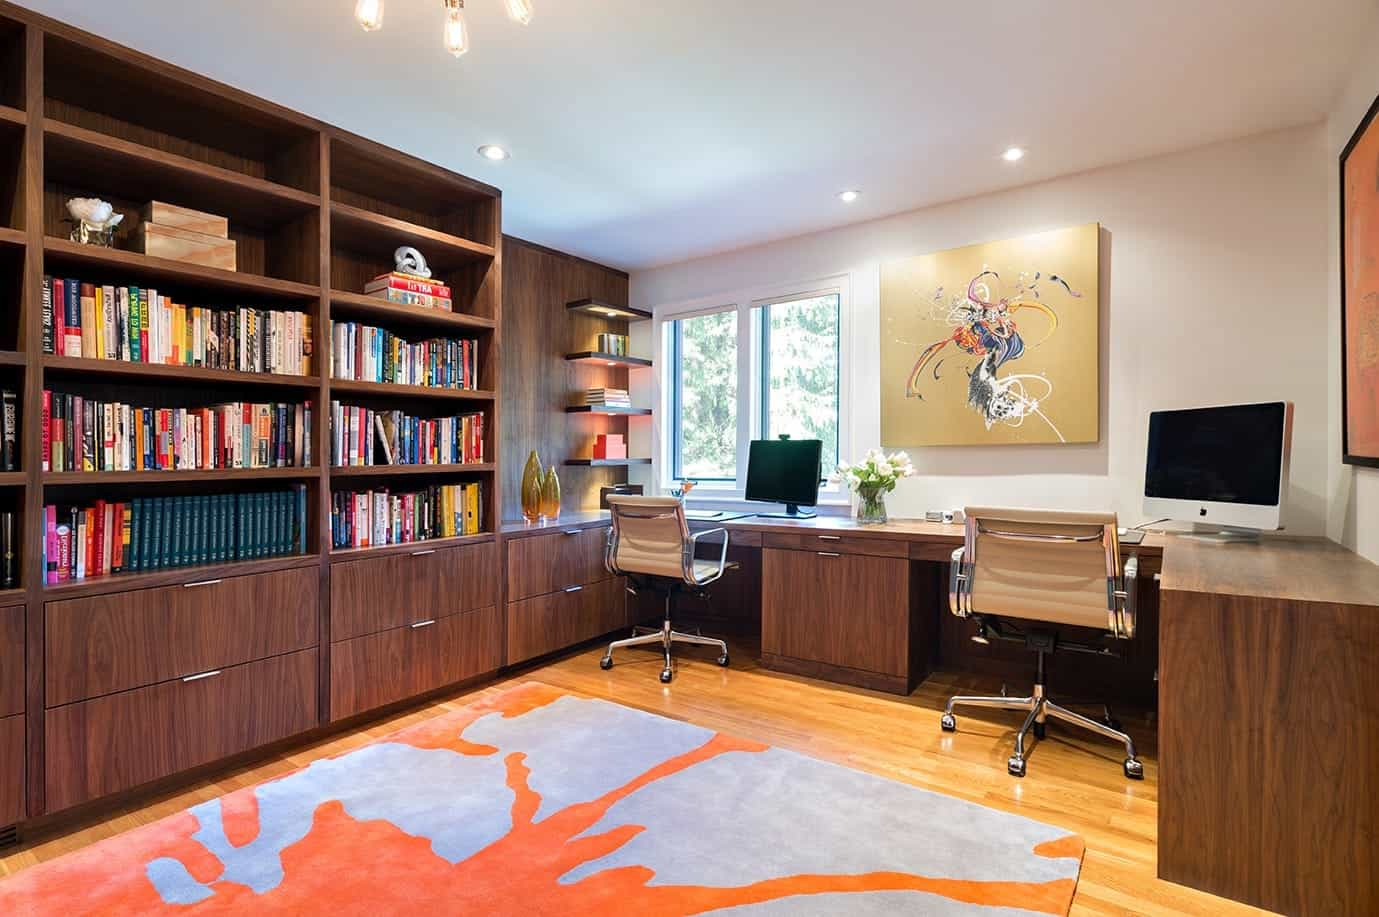 Contemporary Home Office For Two With Built In Flat Cabinets And Bookshelves (View 9 of 10)